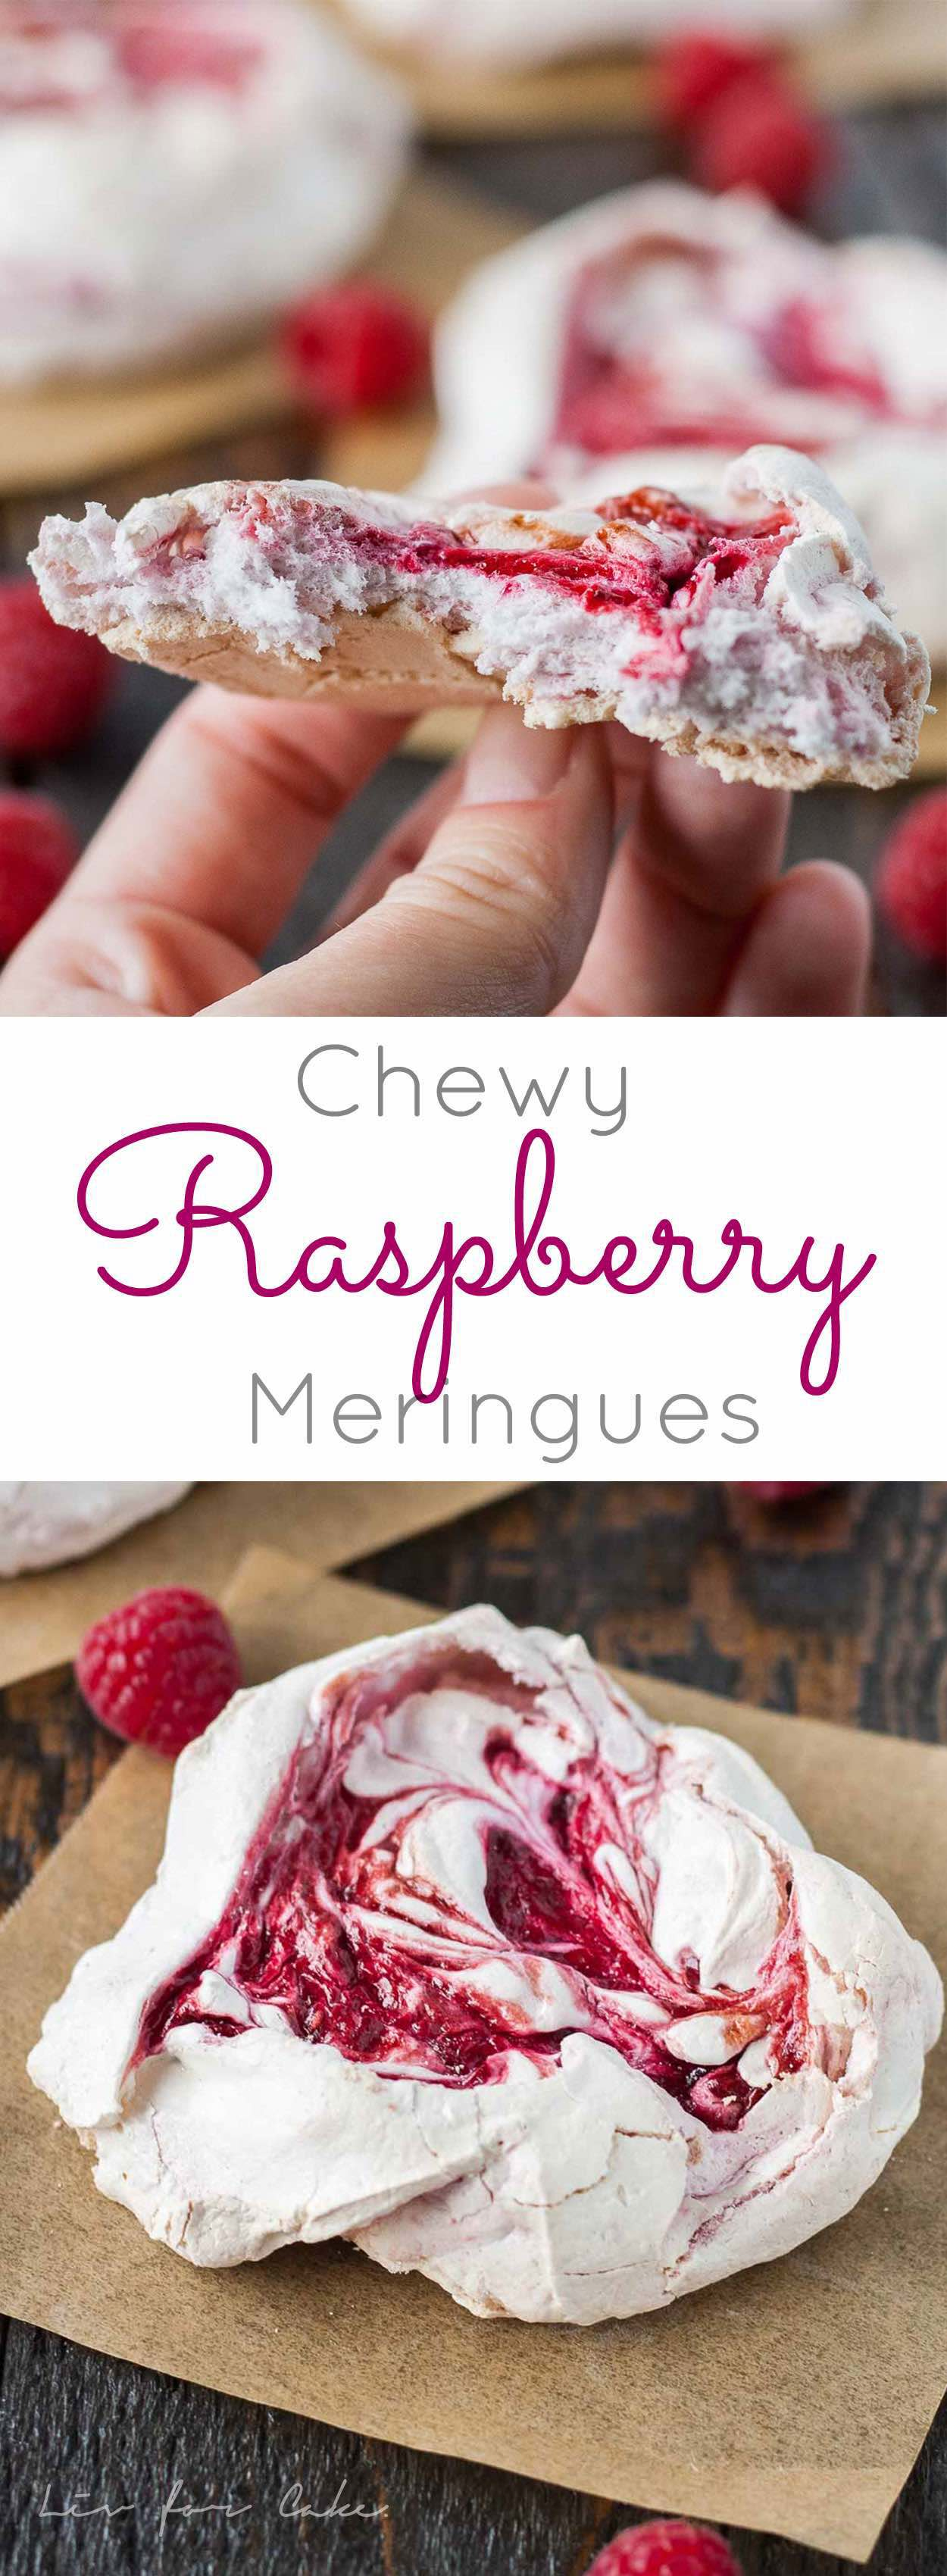 Chewy Raspberry Meringues! Light and crunchy on the outside, soft and chewy on the inside. | livforcake.com